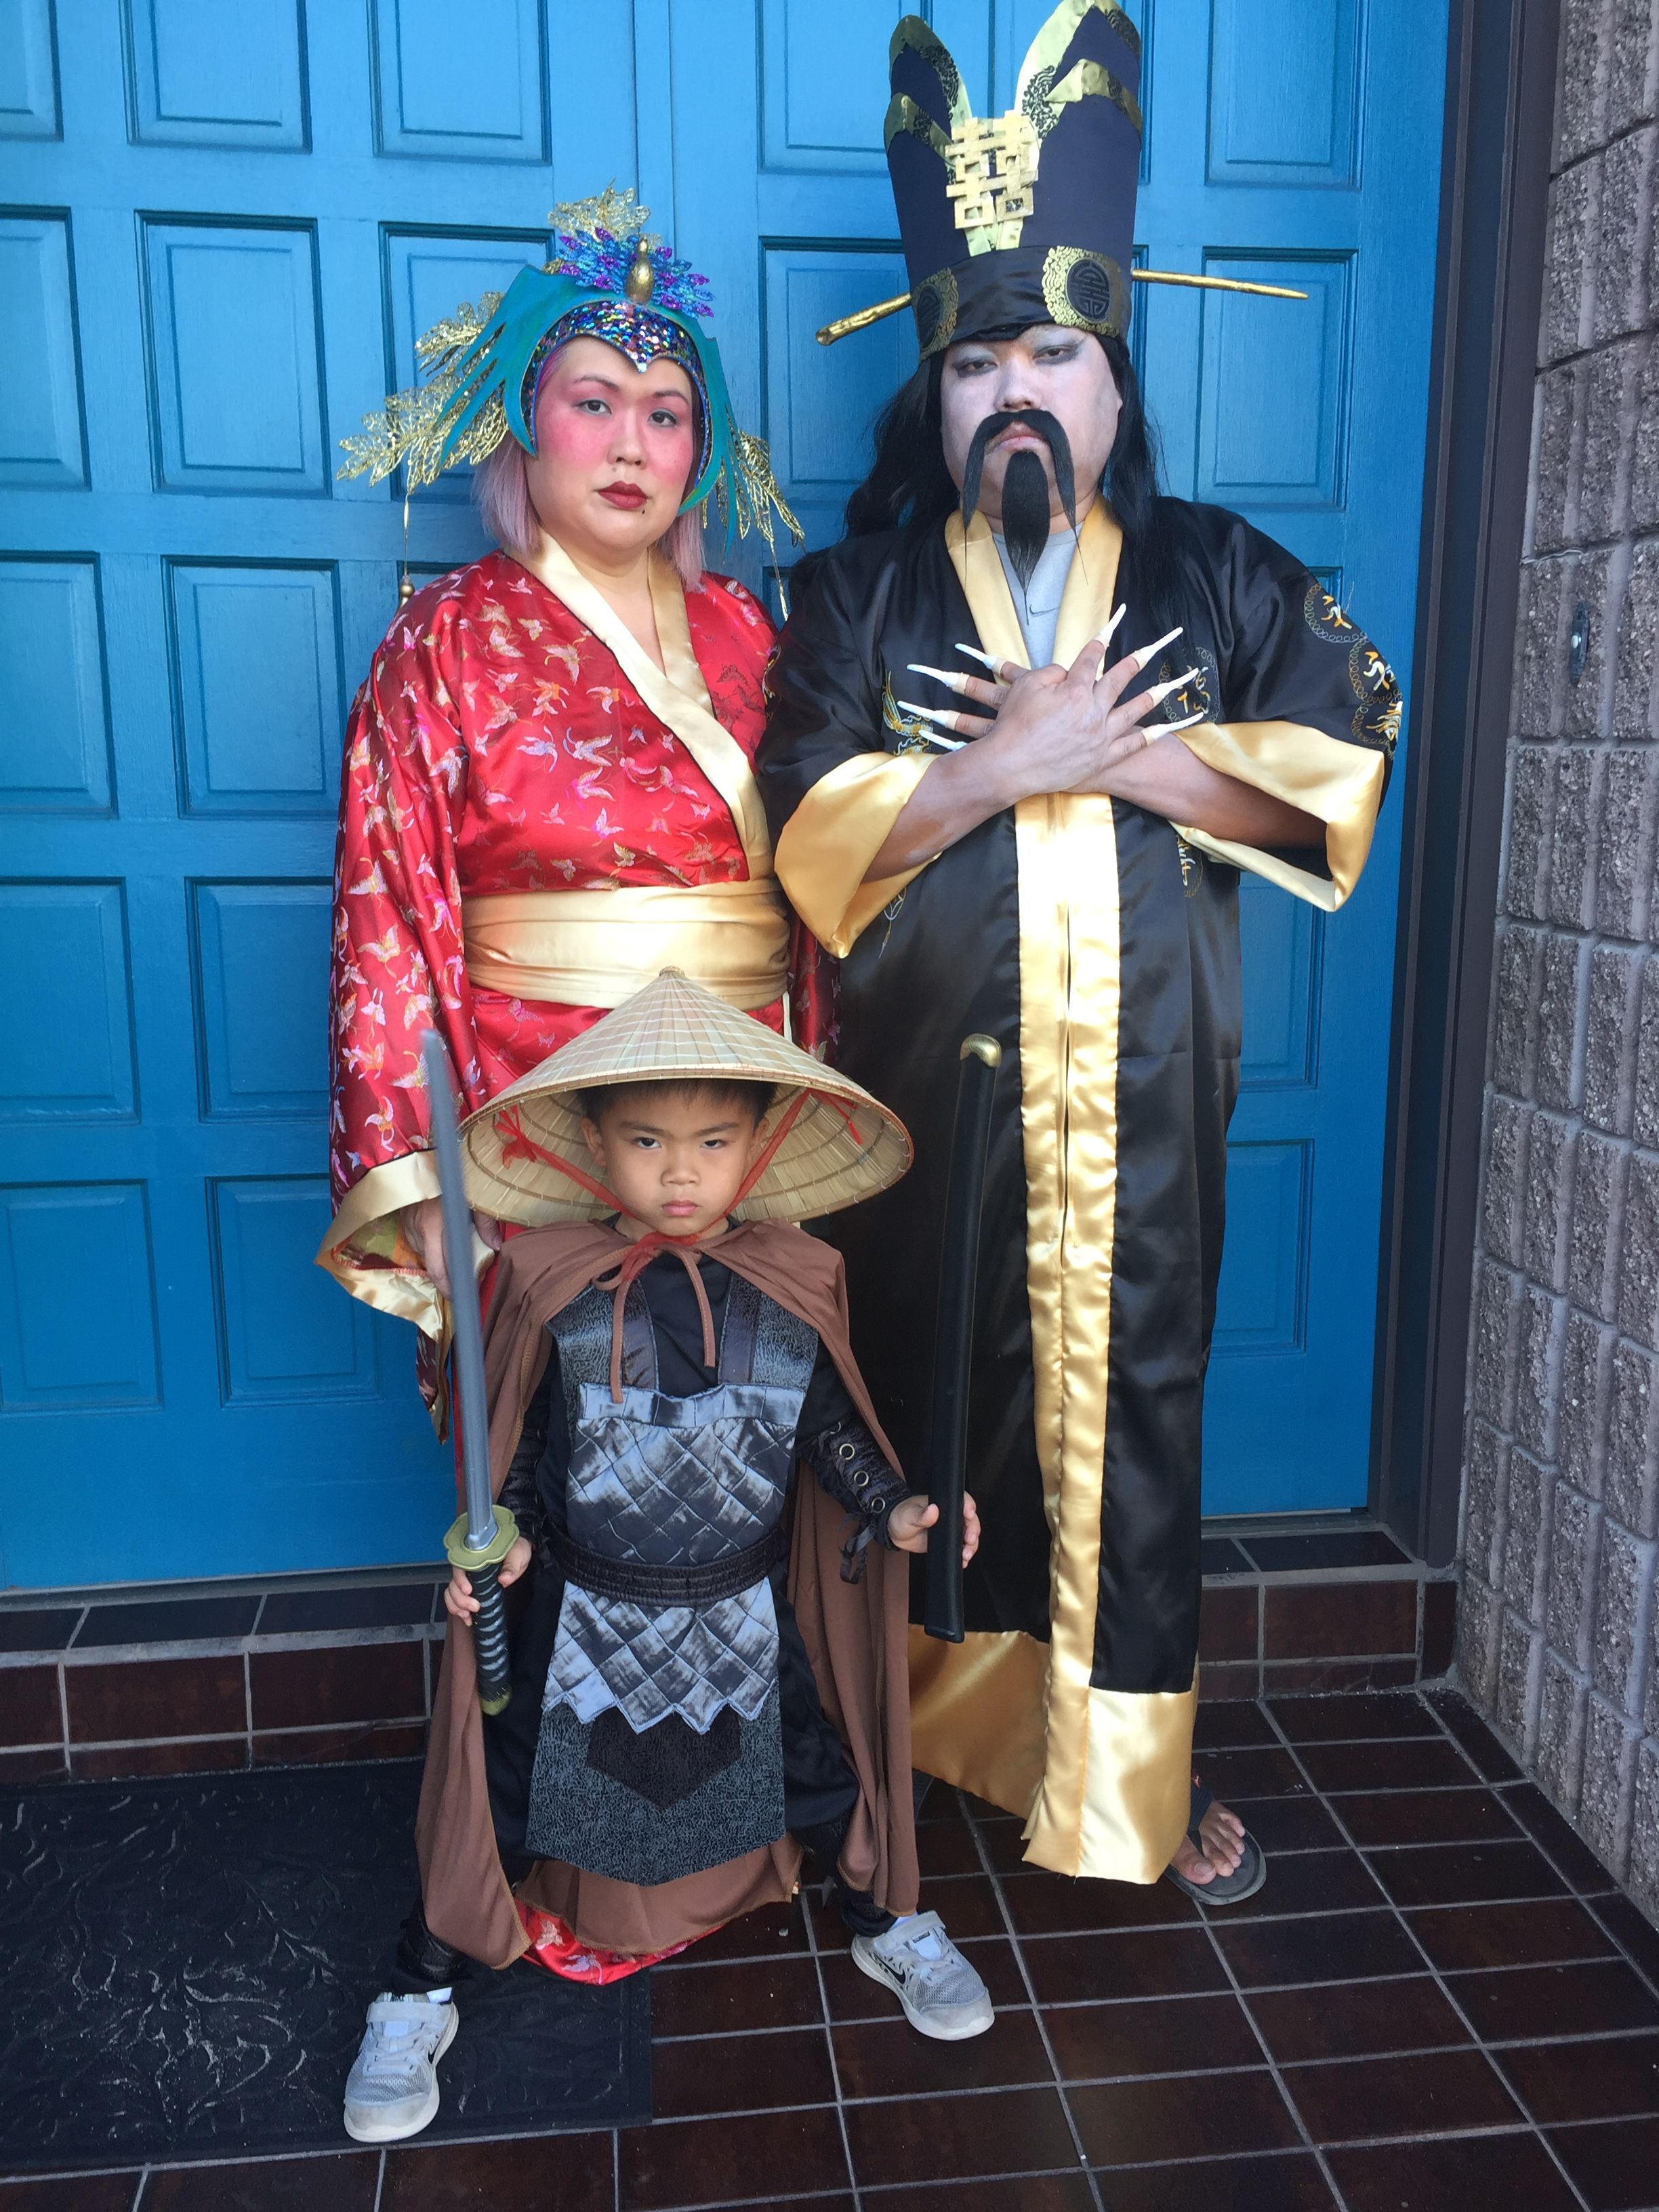 Big Trouble In Little China Family Halloween Costumes Diy Lo Pan Lightning G Family Halloween Costumes Diy Diy Halloween Costumes Family Halloween Costumes